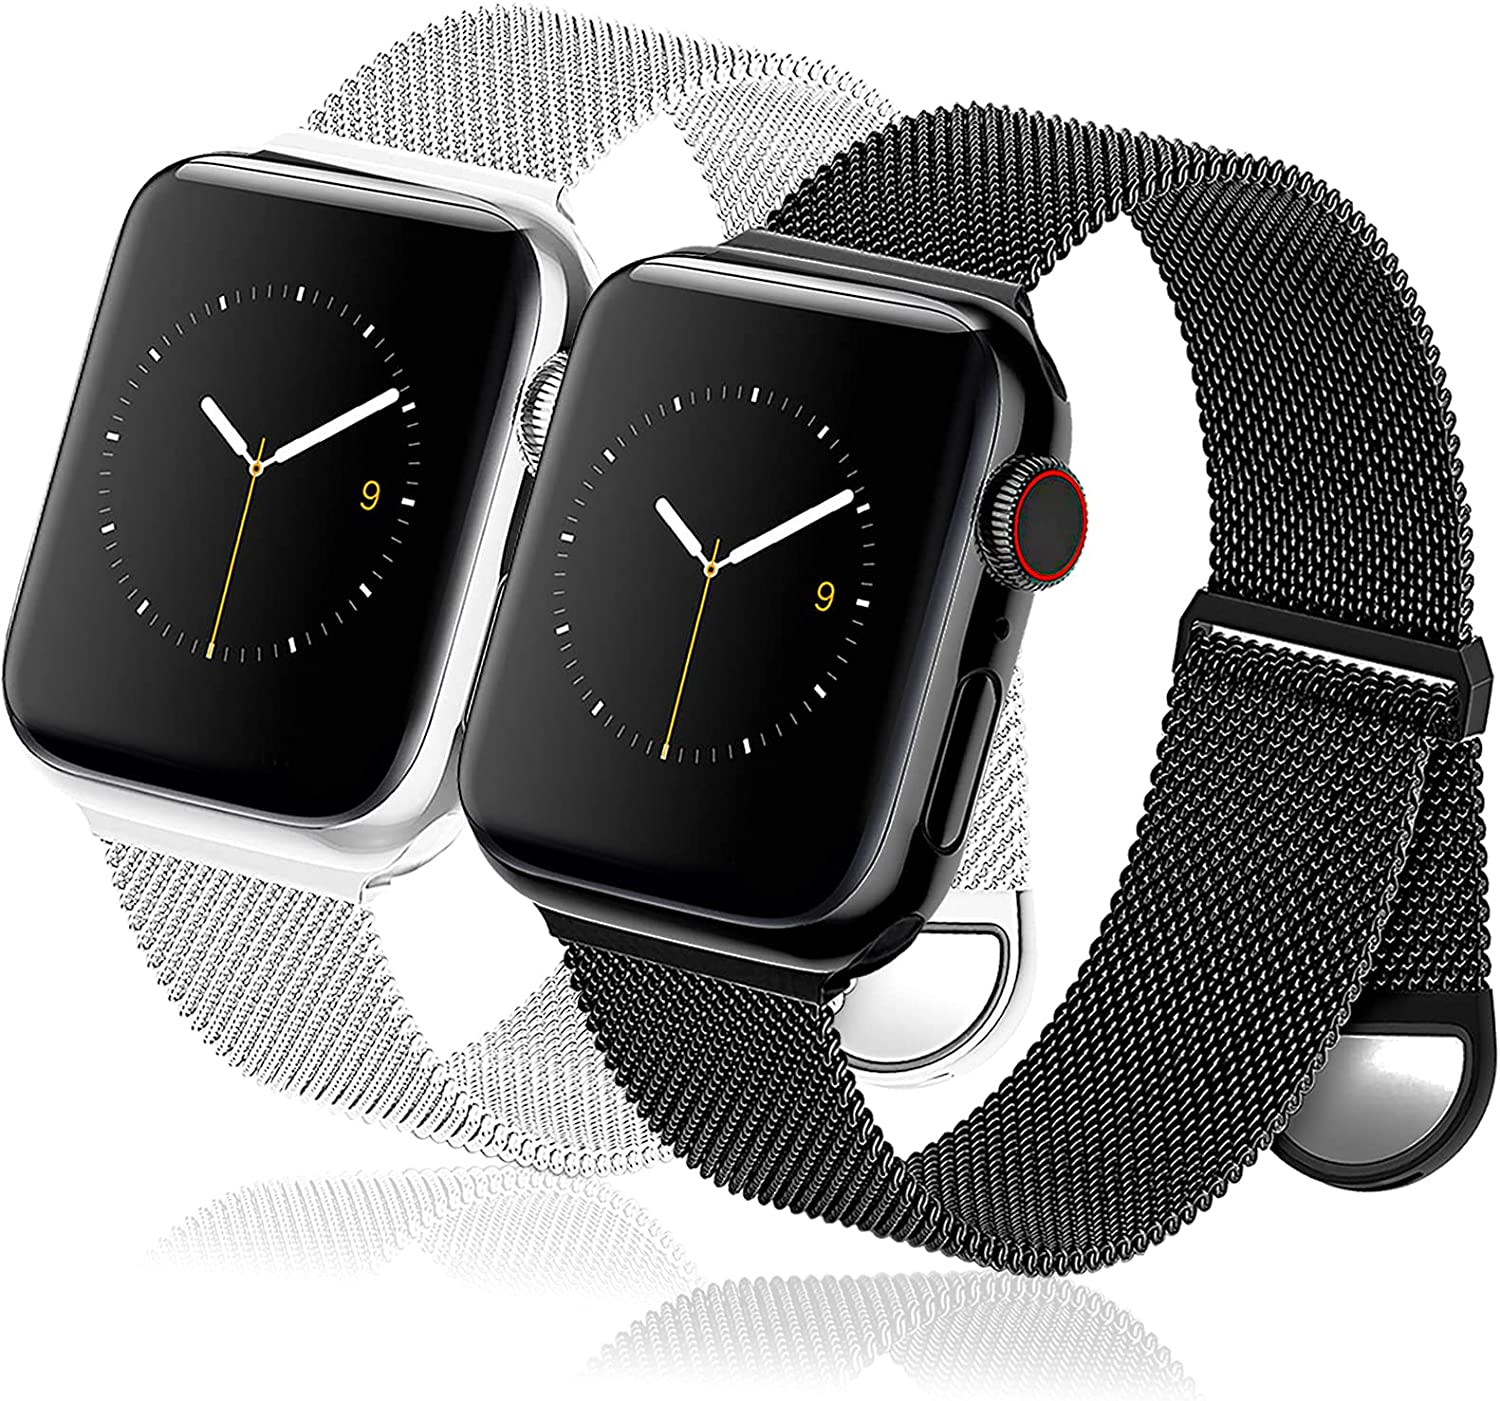 2 Pack Metal Watch Bands Compatible for Apple Watch Band 41mm 40mm 38mm 42mm 44mm 45mm for Women Men, Stainless Steel Magnetic Mesh Loop Strap Replacement for iWatch Series 7/SE/6/5/4/3/2/1